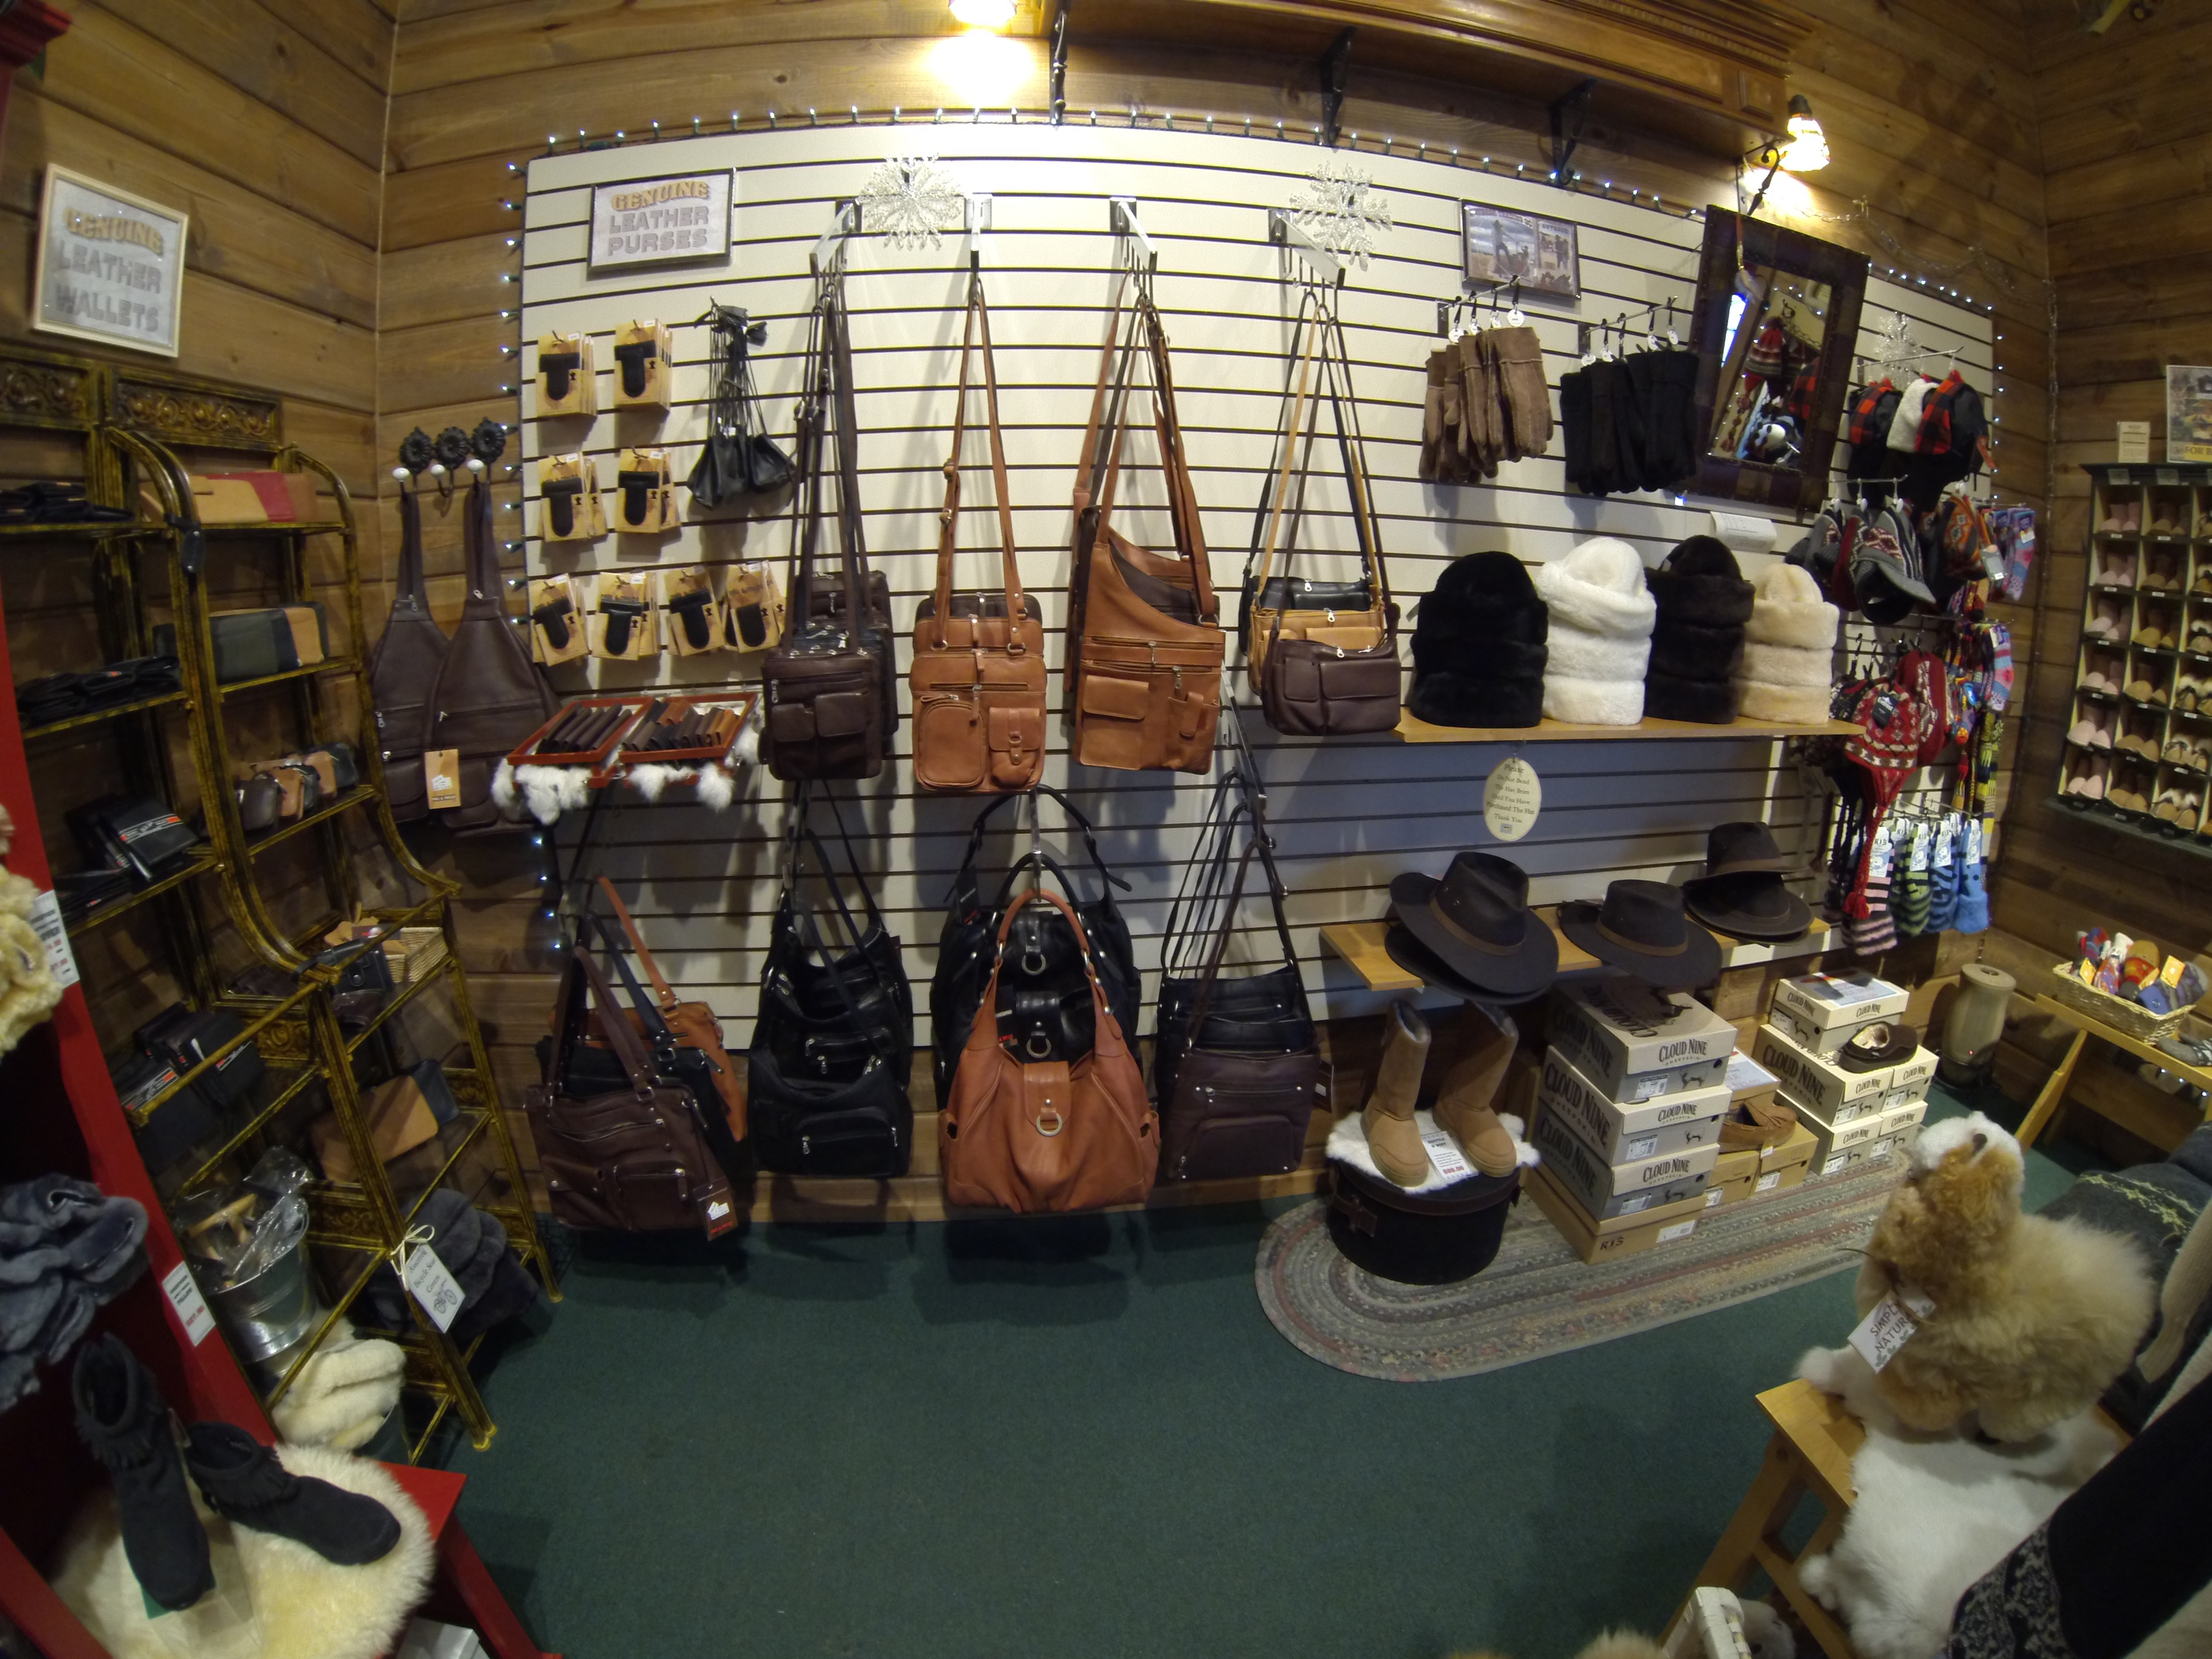 Auggie's Sheepskin, Leather Goods and Gifts